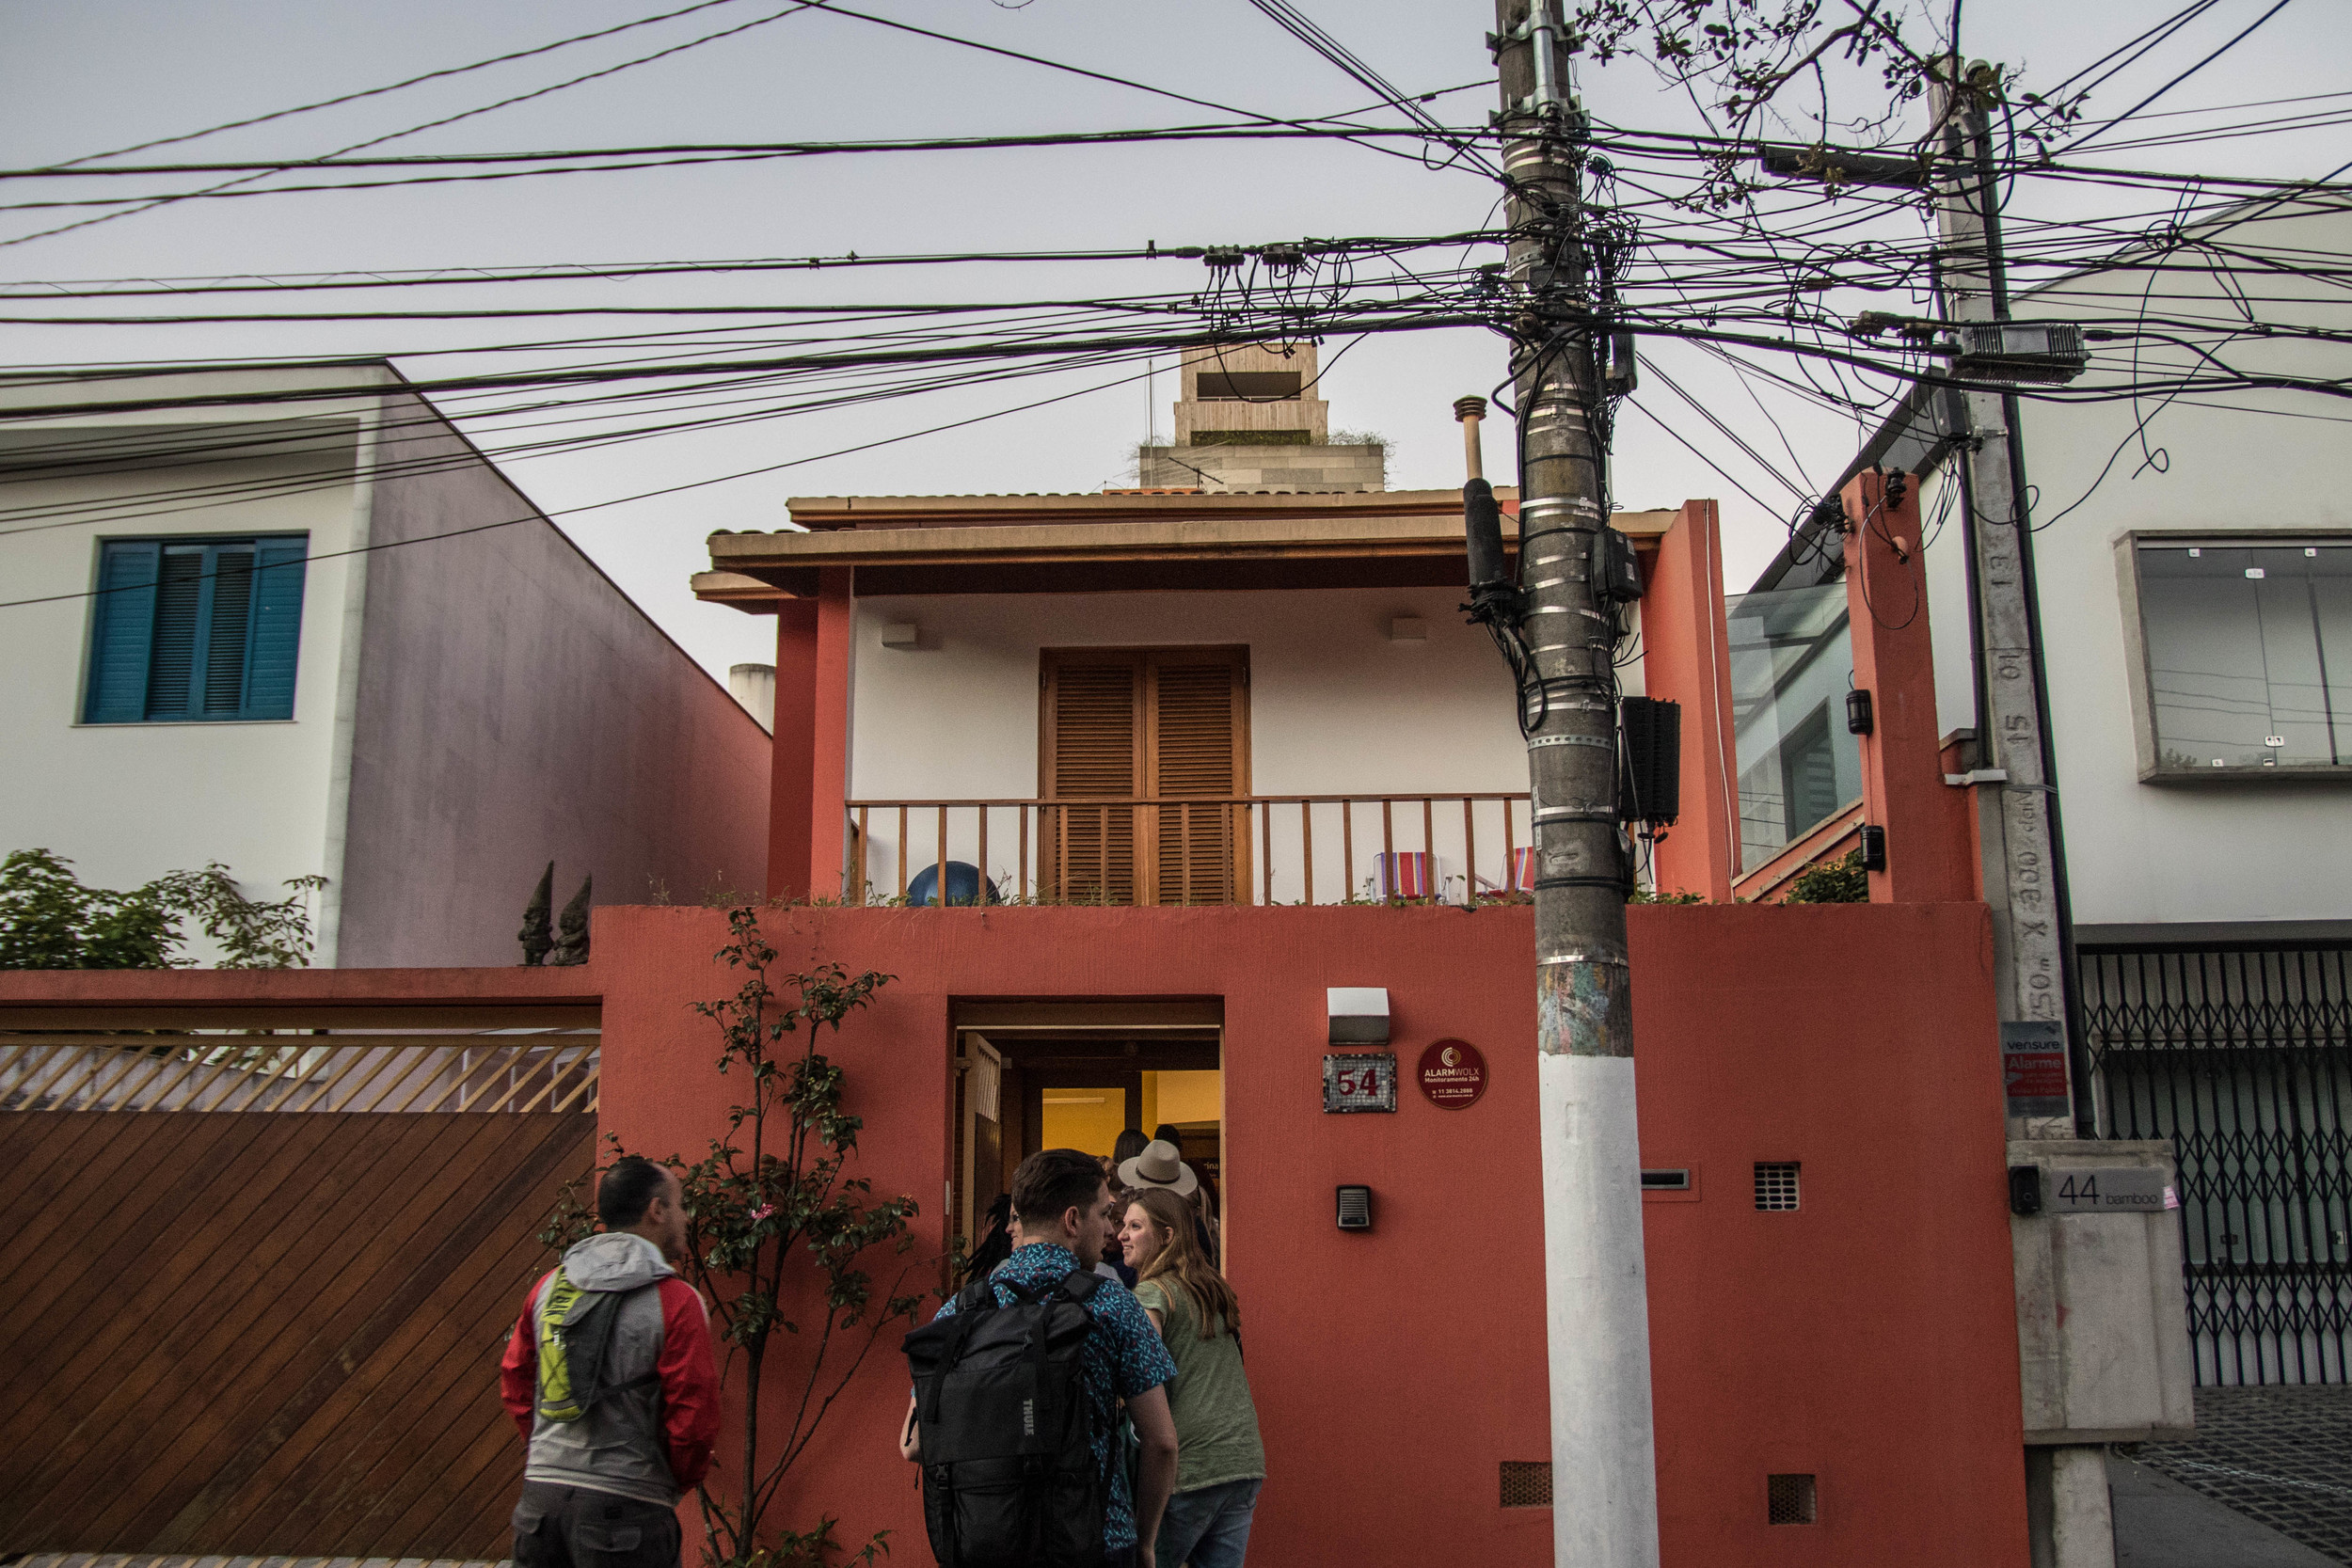 This is the hostel we'll be staying in while in Sao Paulo. I currently have five girls in the [extremely] small room I'm in.